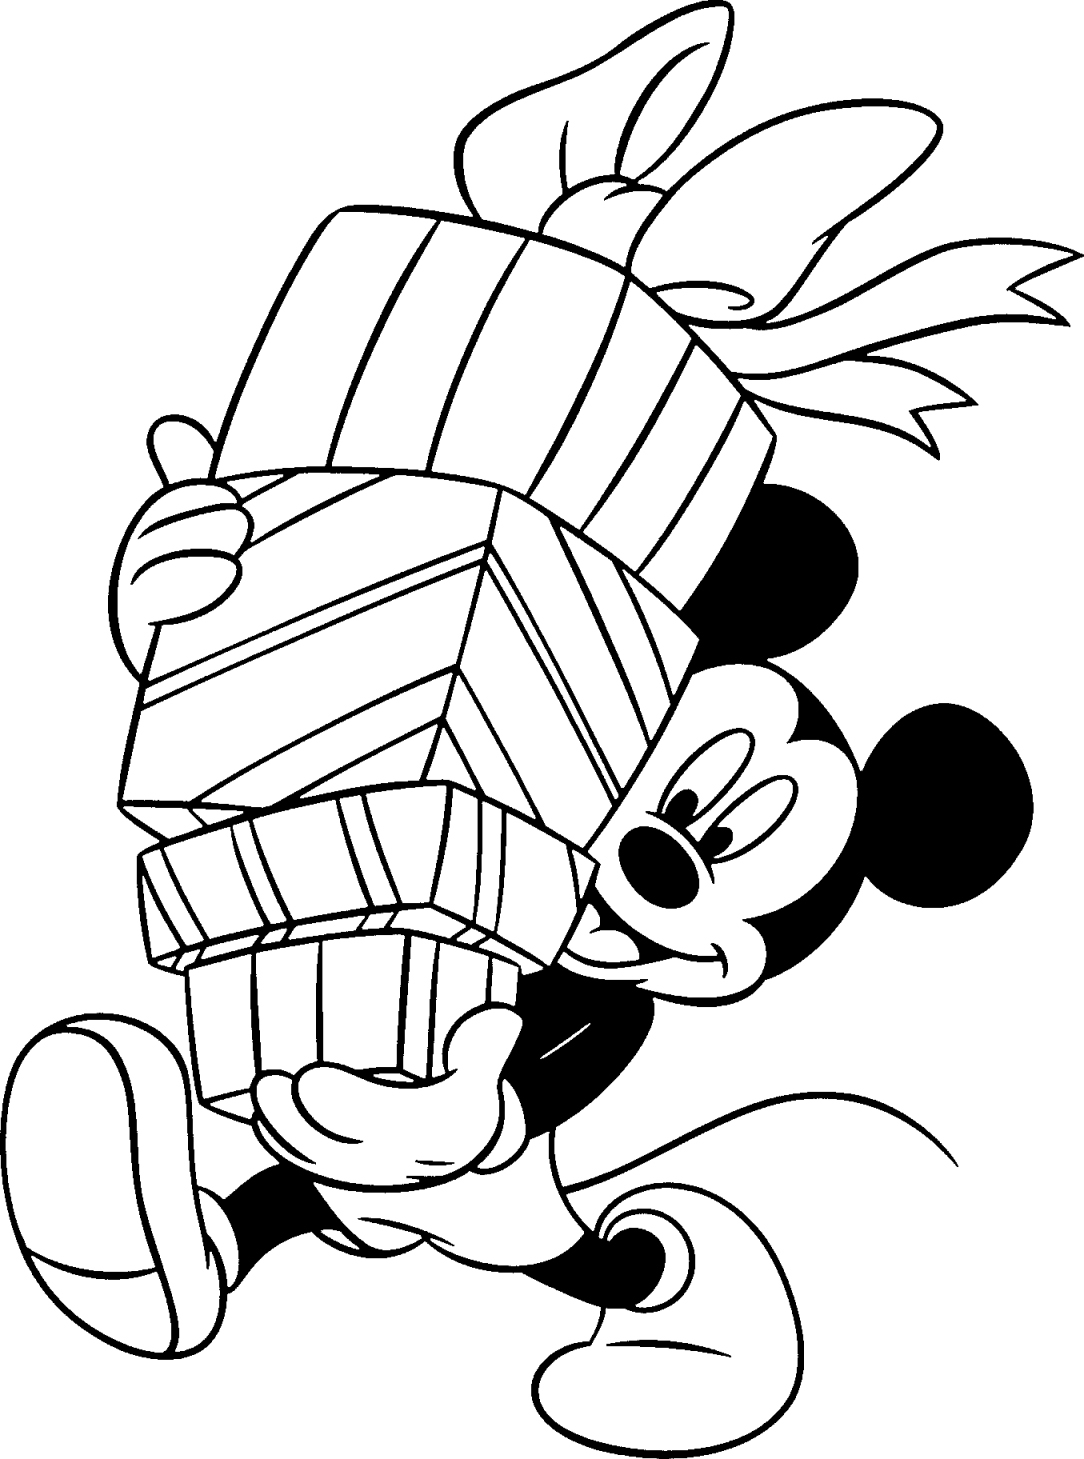 coloring pages disney - photo#23